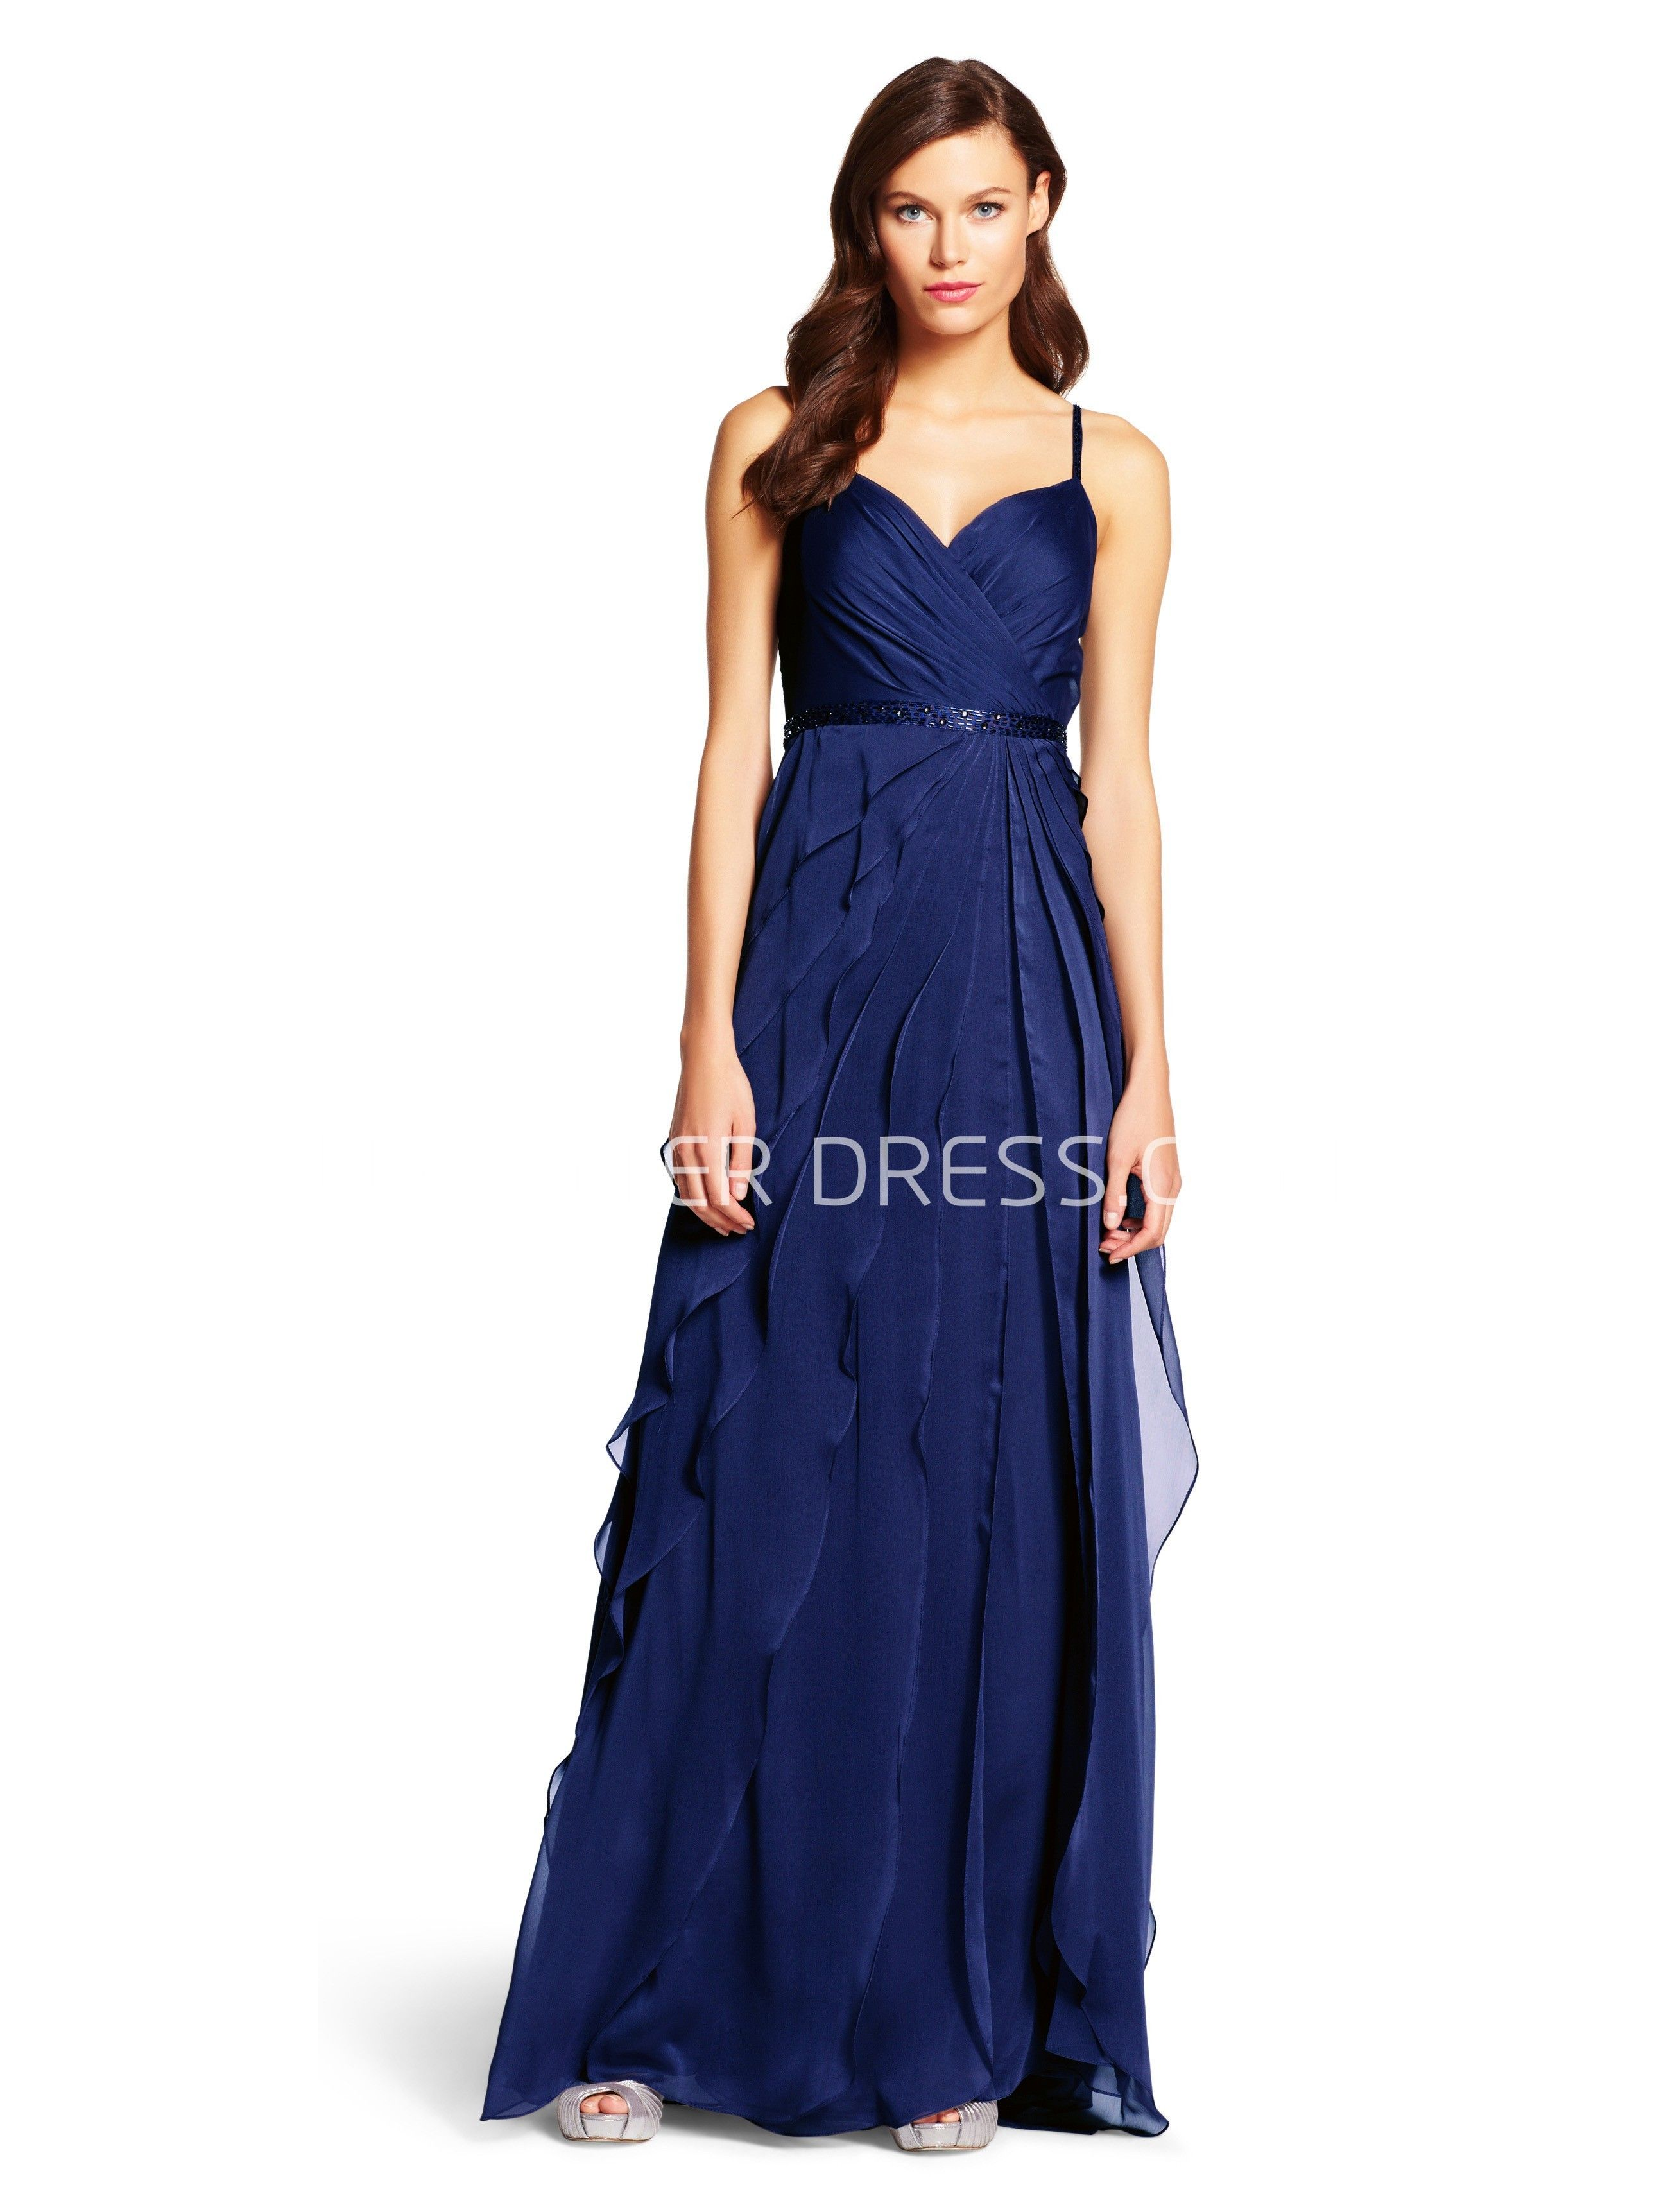 Dark blue wedding dress  ALine Ruched Spaghetti Sleeveless FloorLength Chiffon Bridesmaid